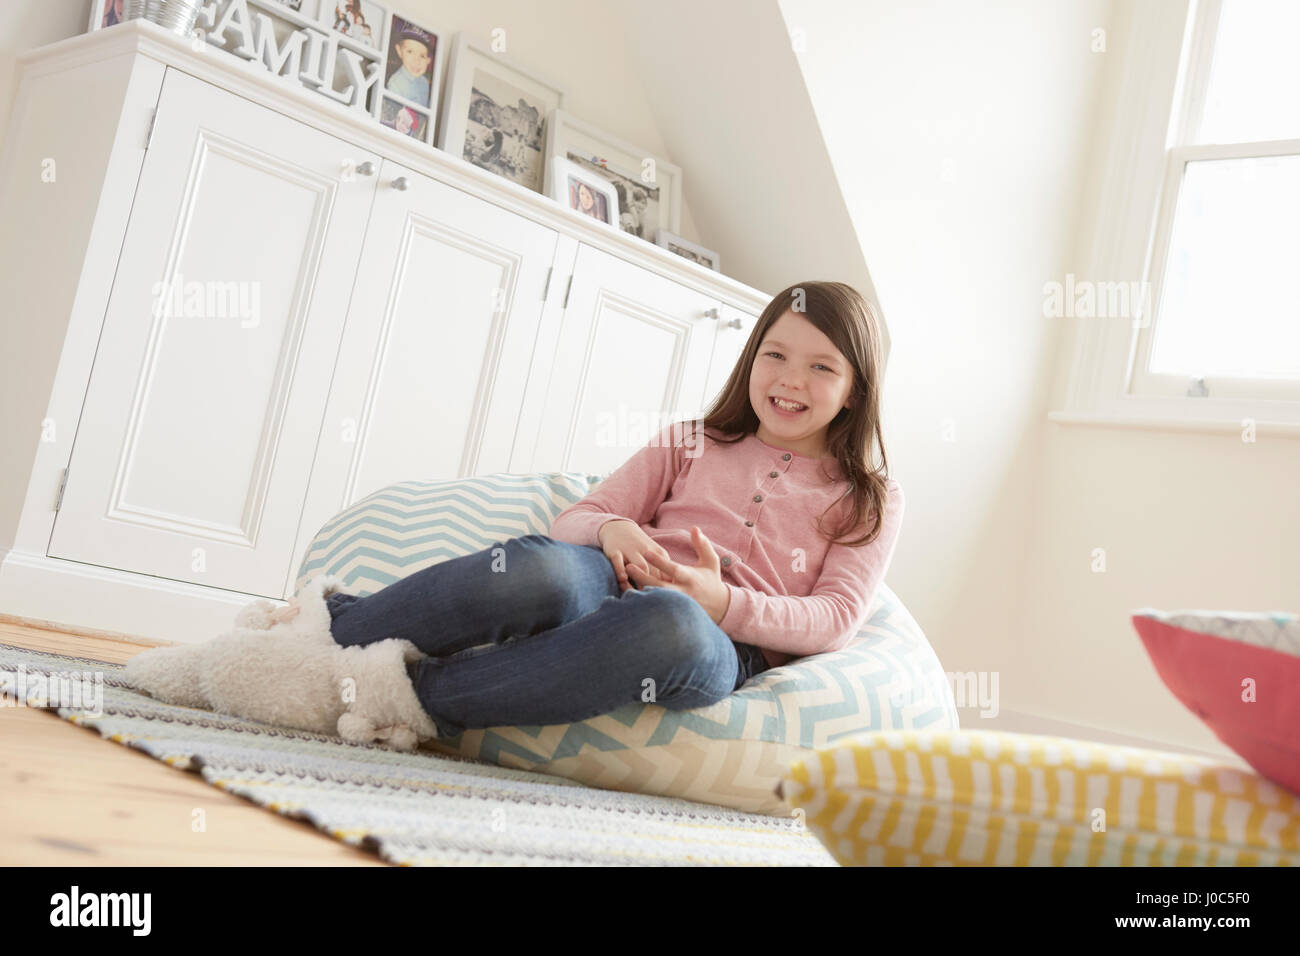 Portrait of girl reclining on beanbag chair - Stock Image